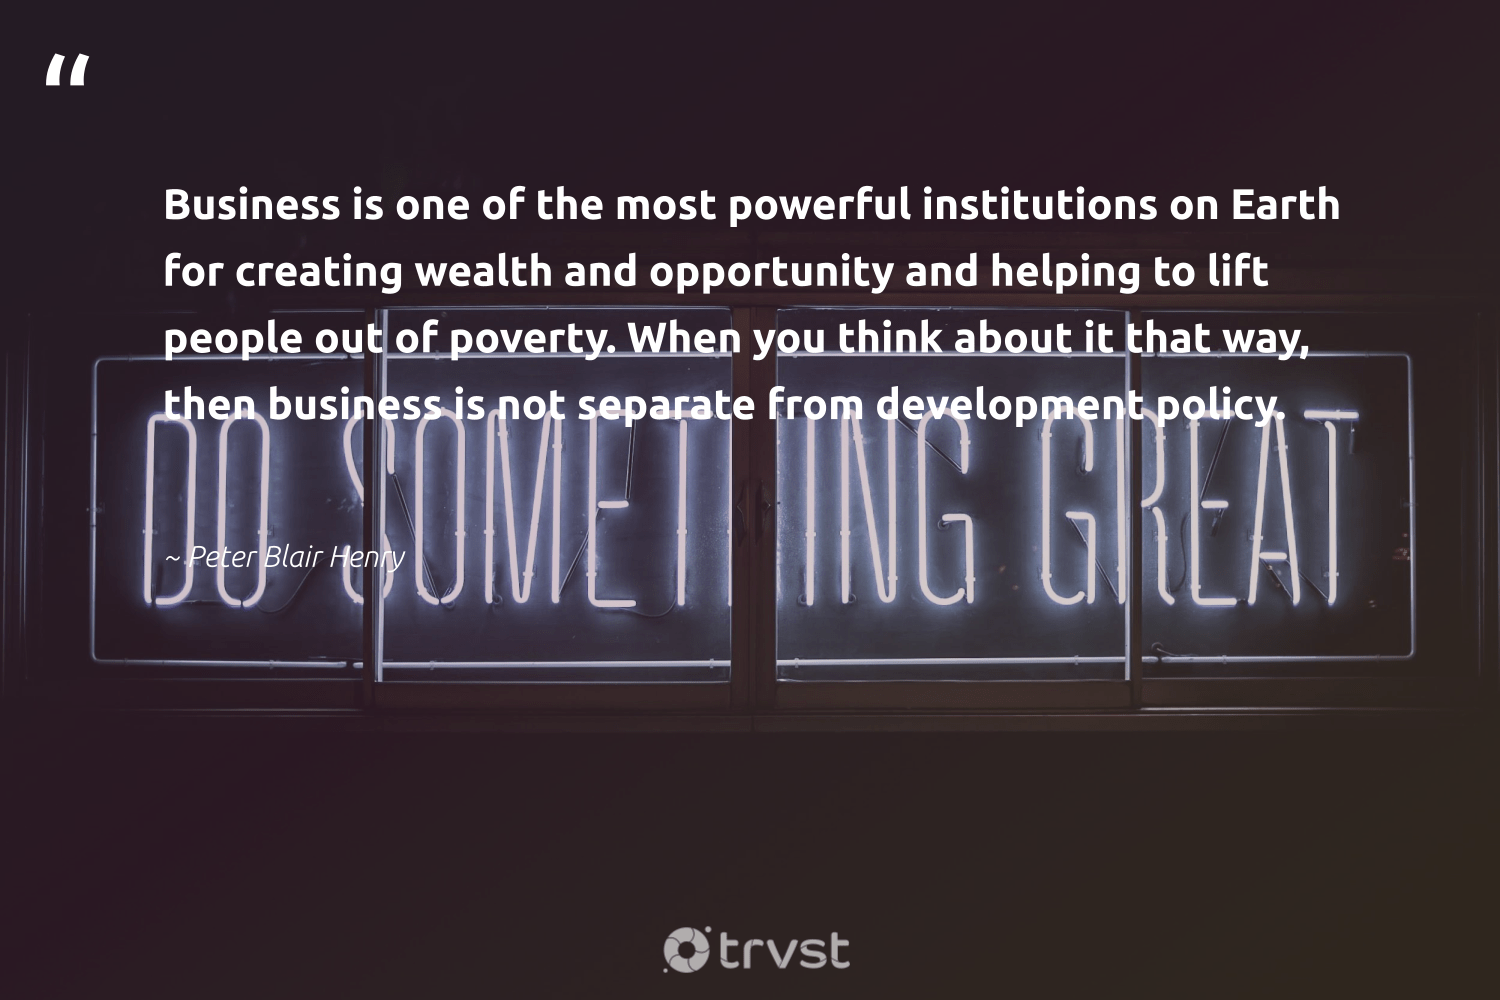 """""""Business is one of the most powerful institutions on Earth for creating wealth and opportunity and helping to lift people out of poverty. When you think about it that way, then business is not separate from development policy.""""  - Peter Blair Henry #trvst #quotes #earth #poverty #development #conservation #dogood #gogreen #ecoconscious #planet #sustainable #climatechange"""